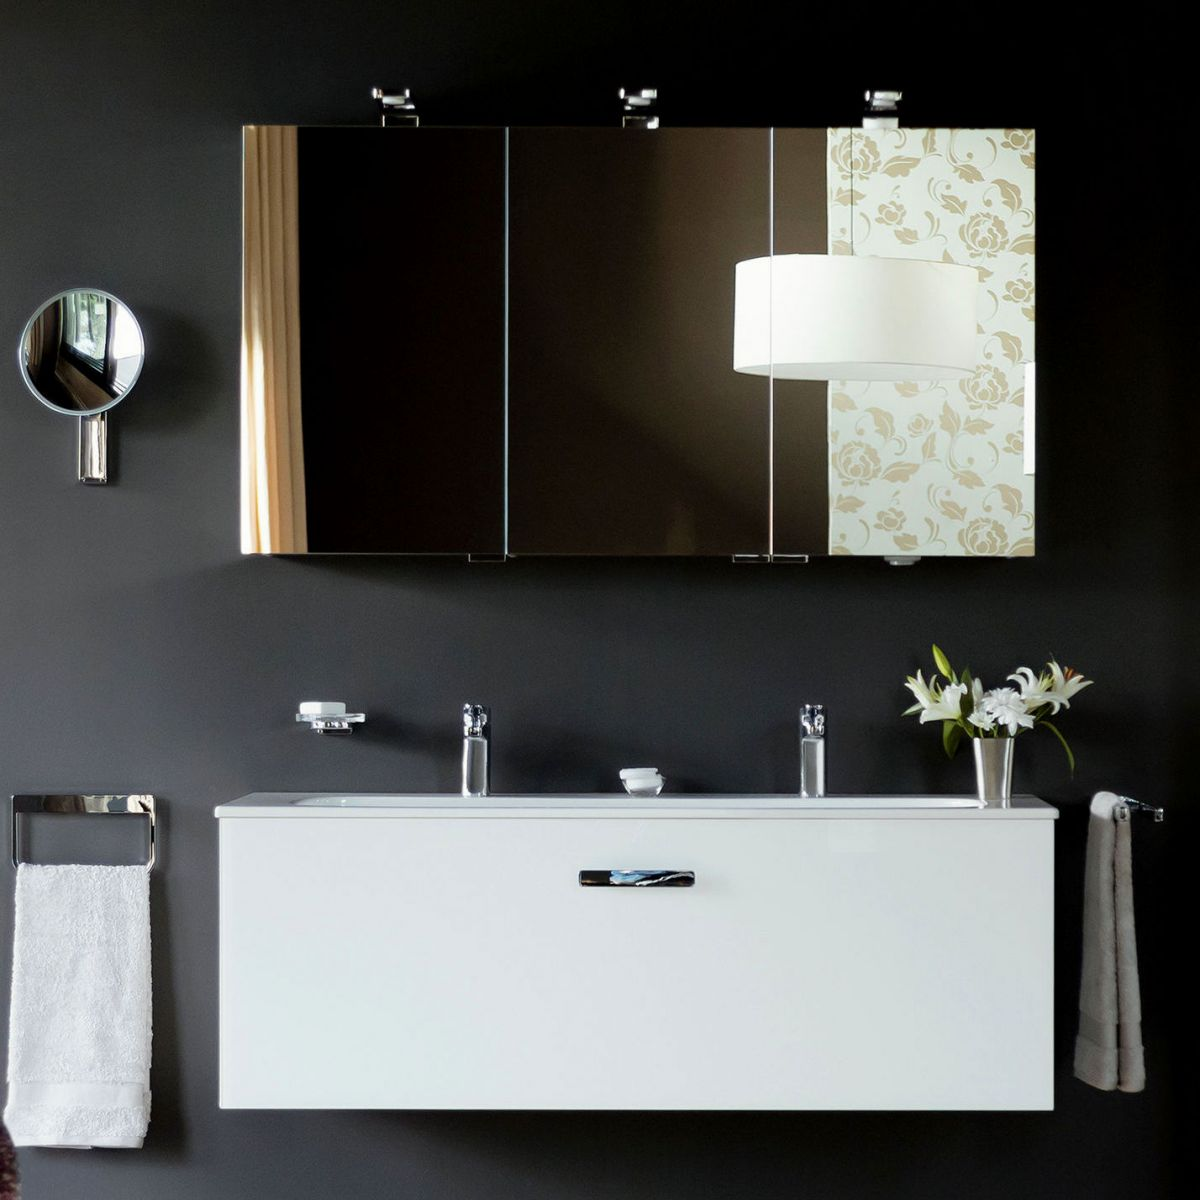 Keuco royal universe illuminated mirror cabinet uk bathrooms - Bathroom mirrors and medicine cabinets ...